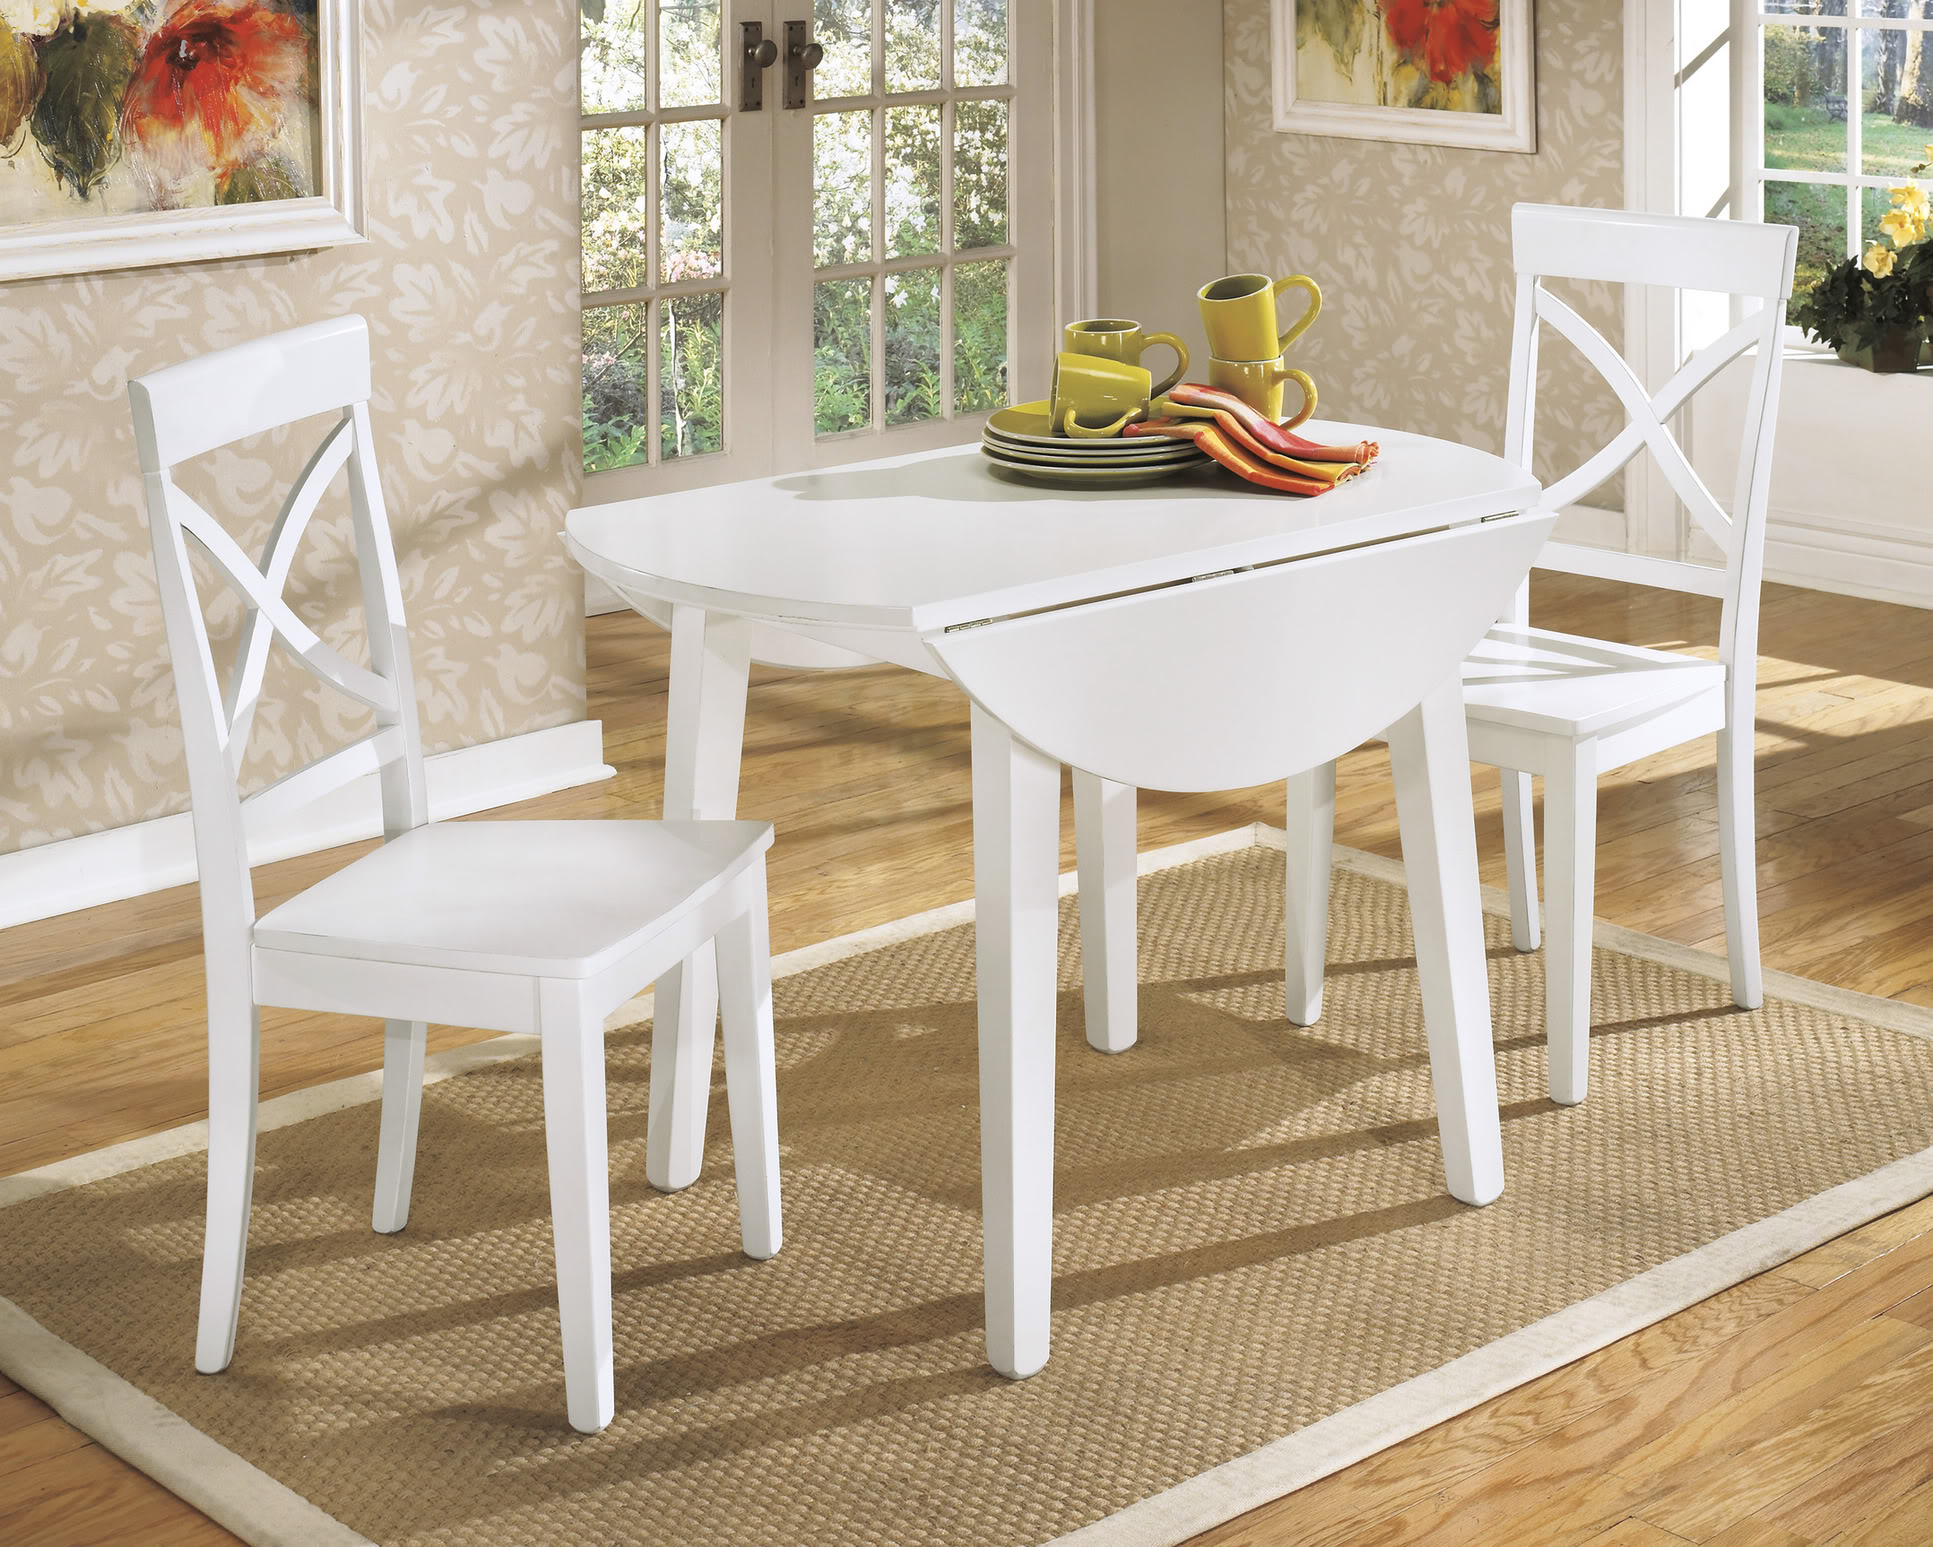 Round White Painted Wooden And Two Chairs Square Rug Stylish Wallpaper On Wall With Frames Table